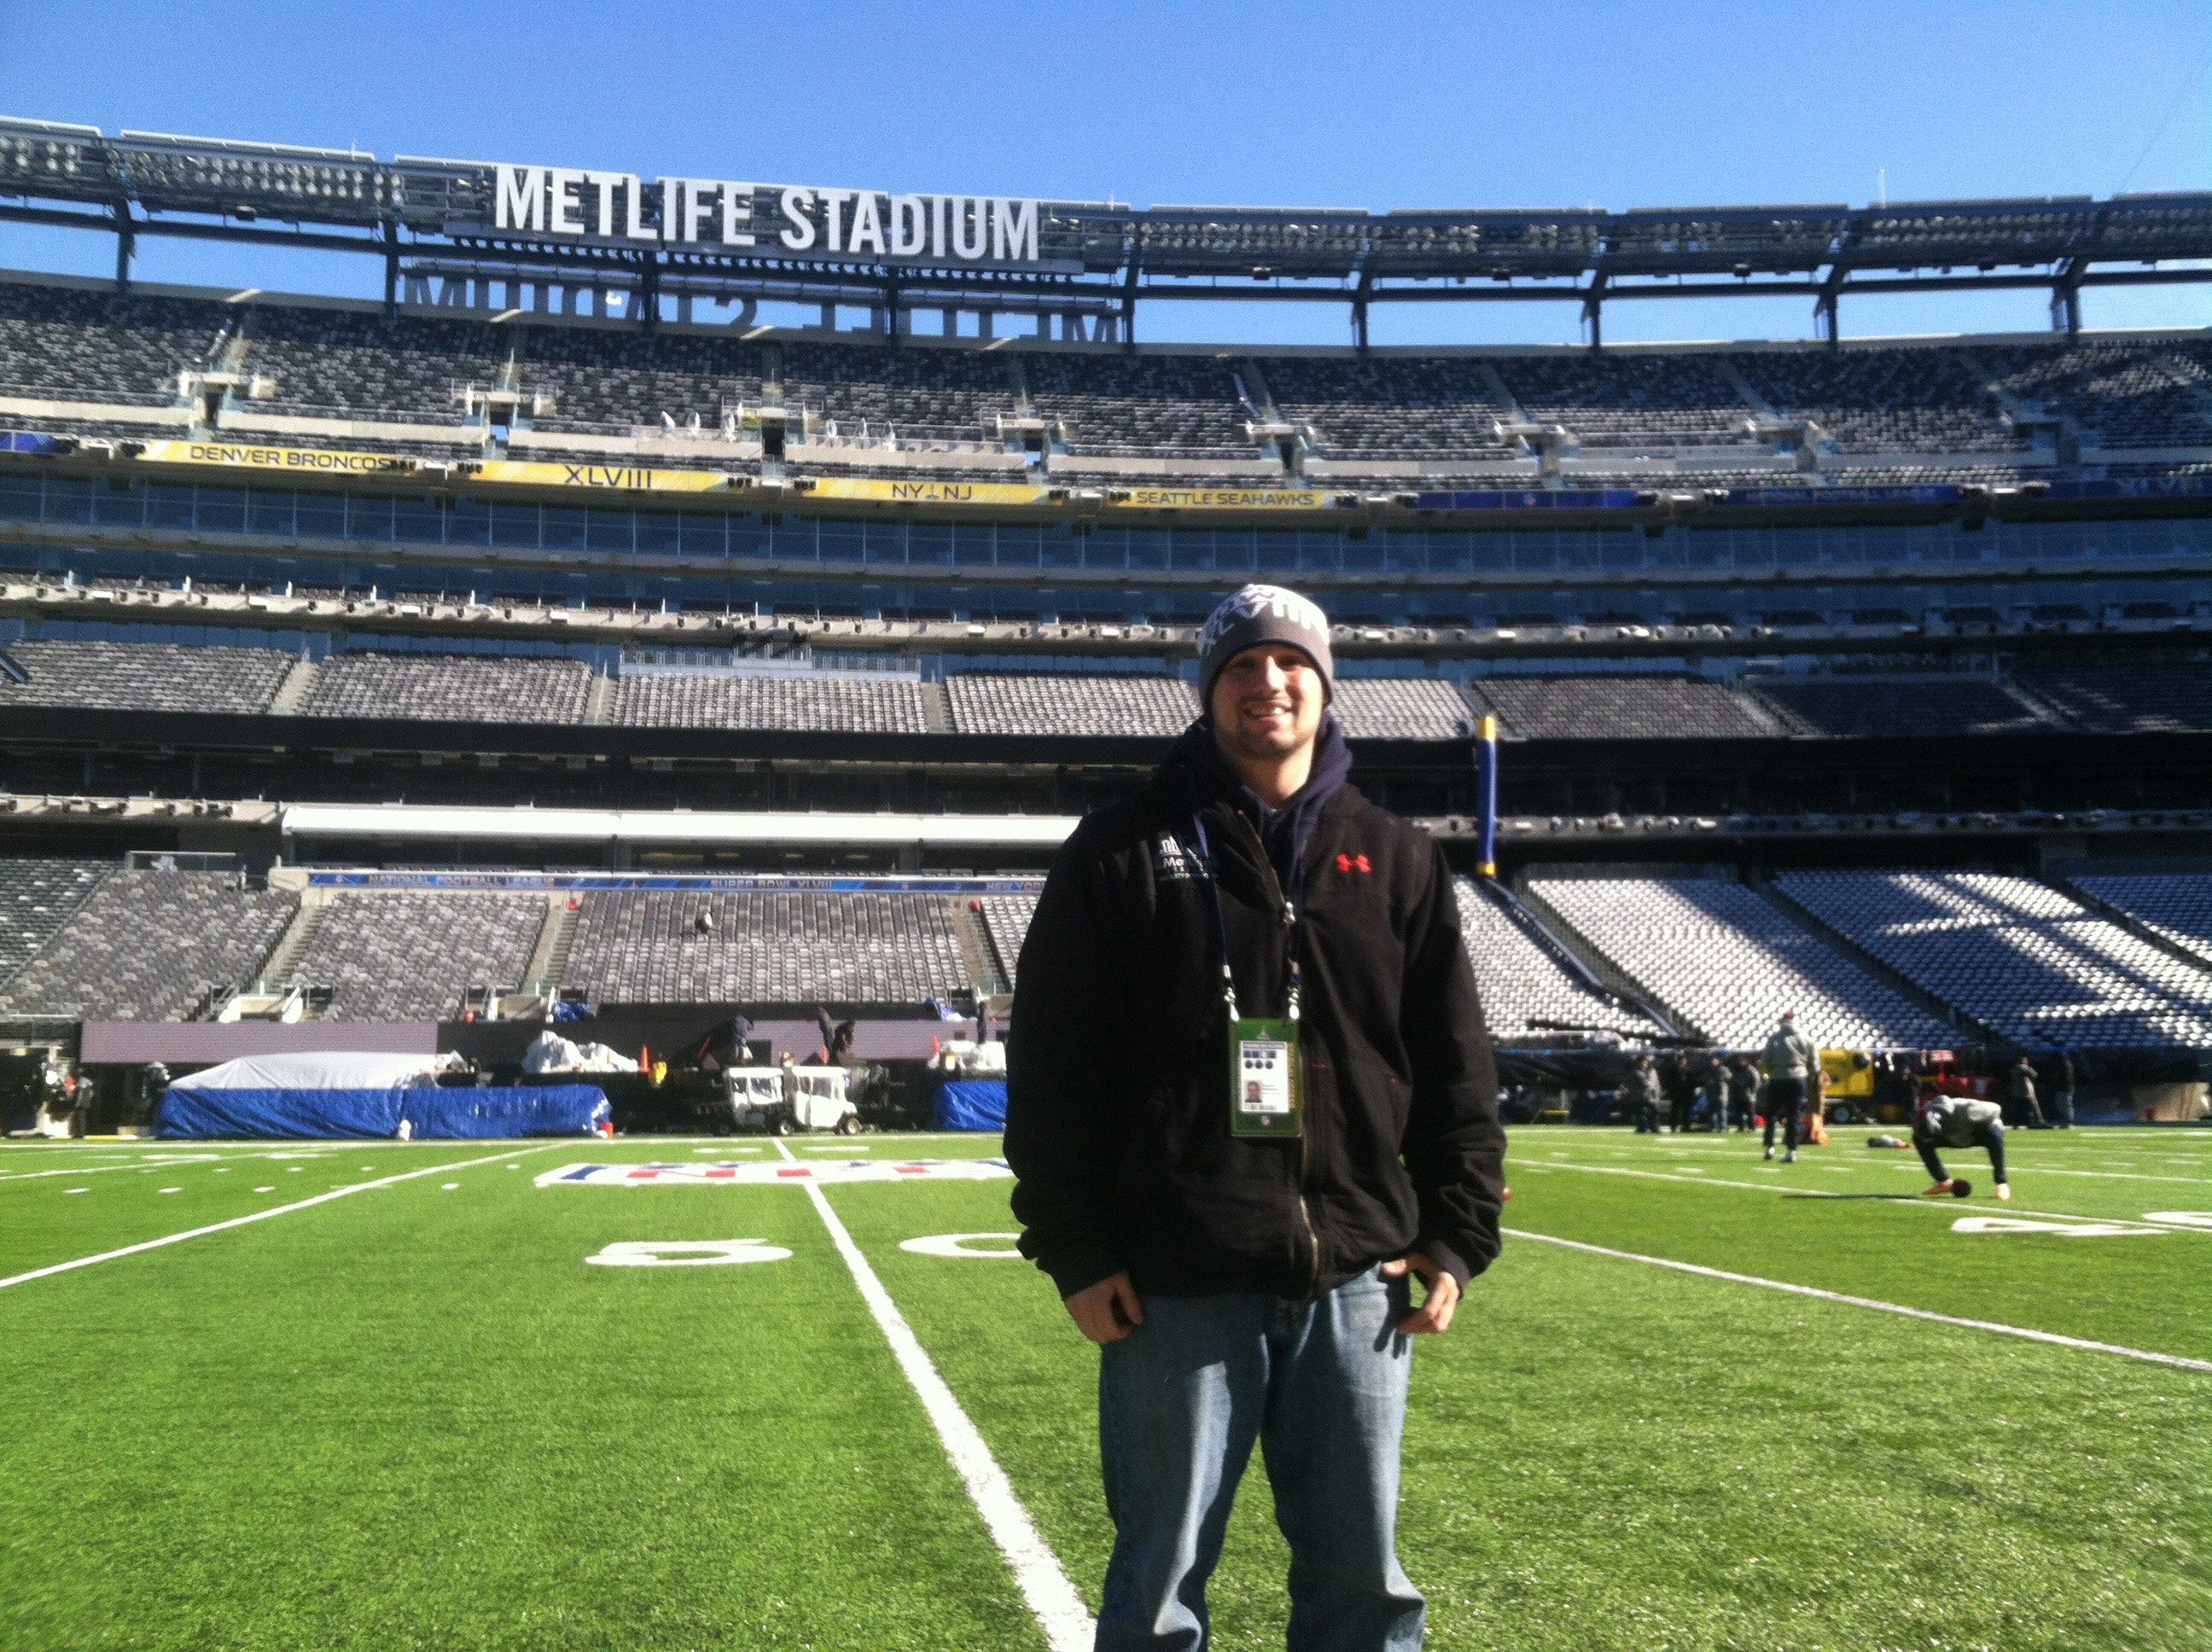 Steve Sansonese is hoping to avoid snow at MetLife field in New Jersey for tonight's game.